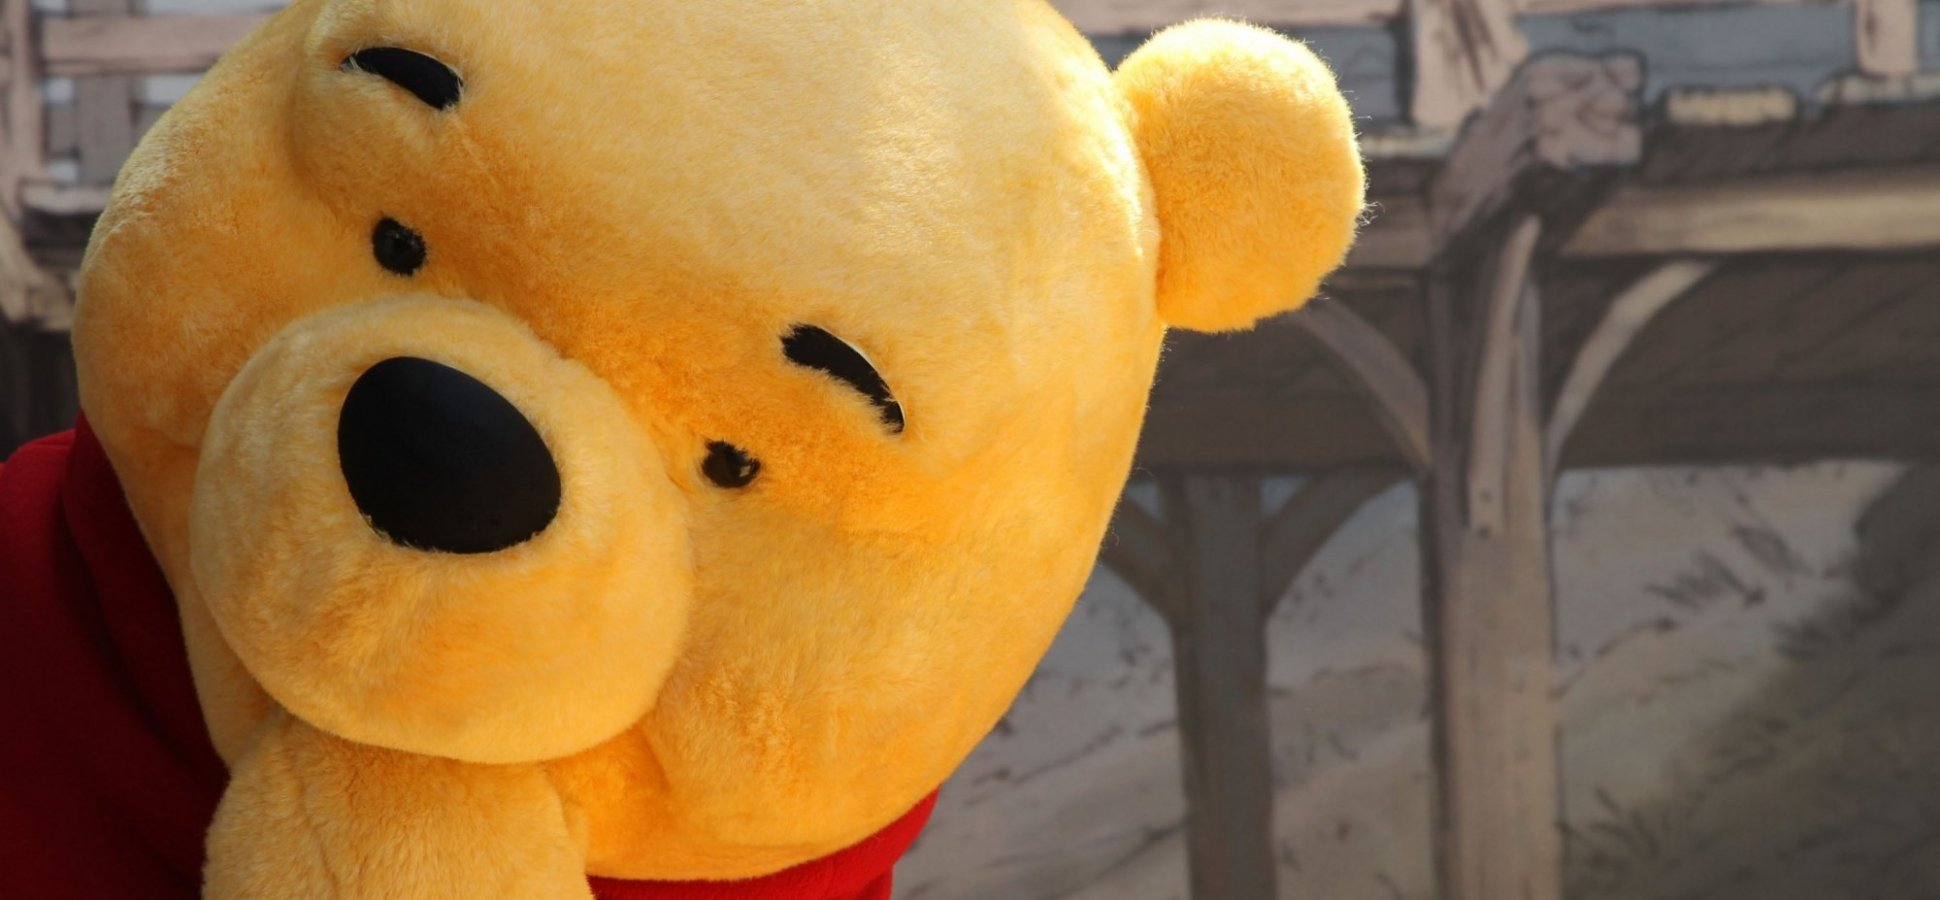 17 Wise Winnie The Pooh Quotes About The Remarkable Power